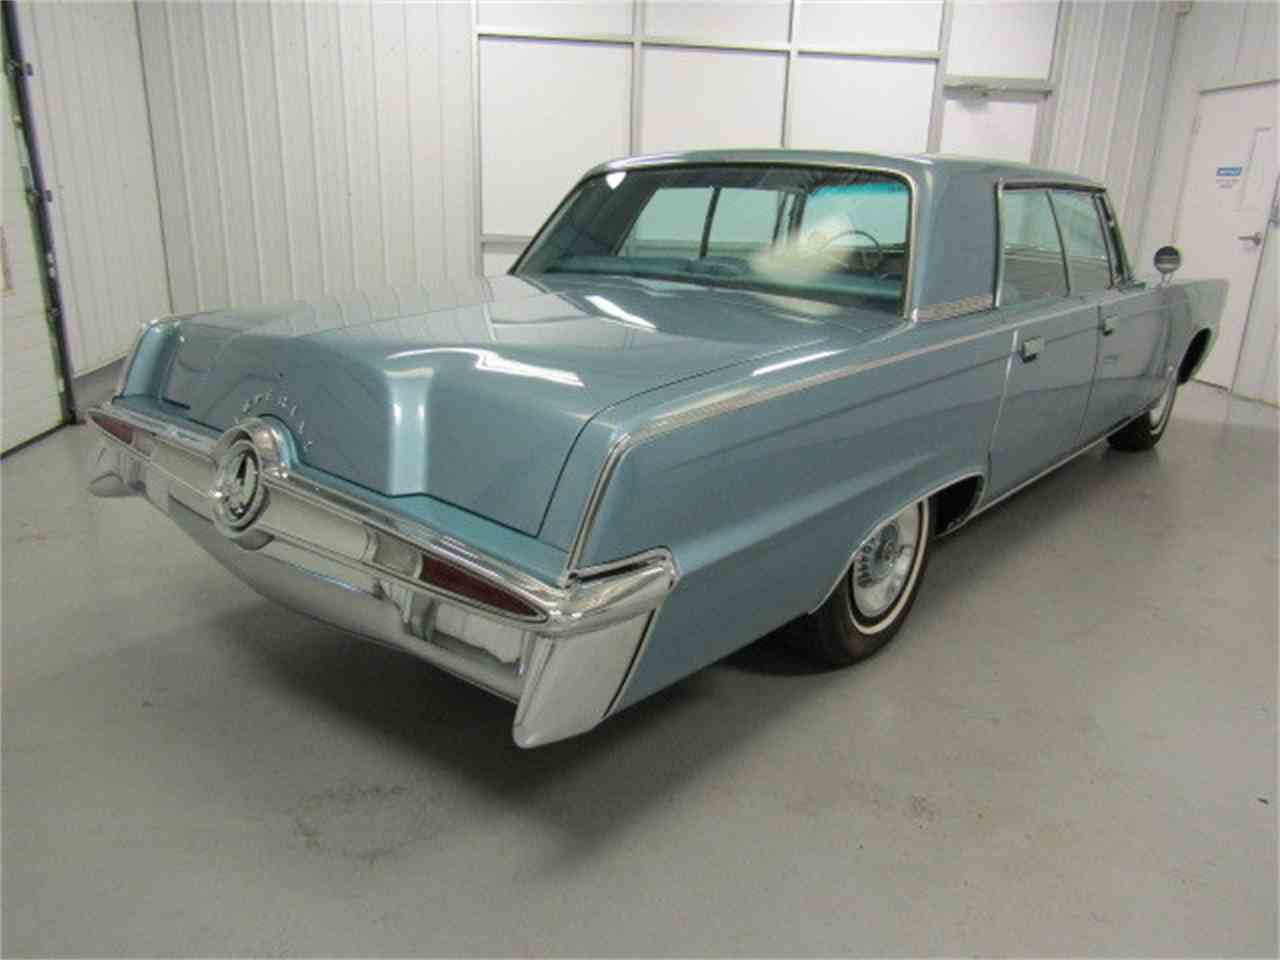 Large Picture of '64 Chrysler Imperial located in Christiansburg Virginia - $21,970.00 - JLDR